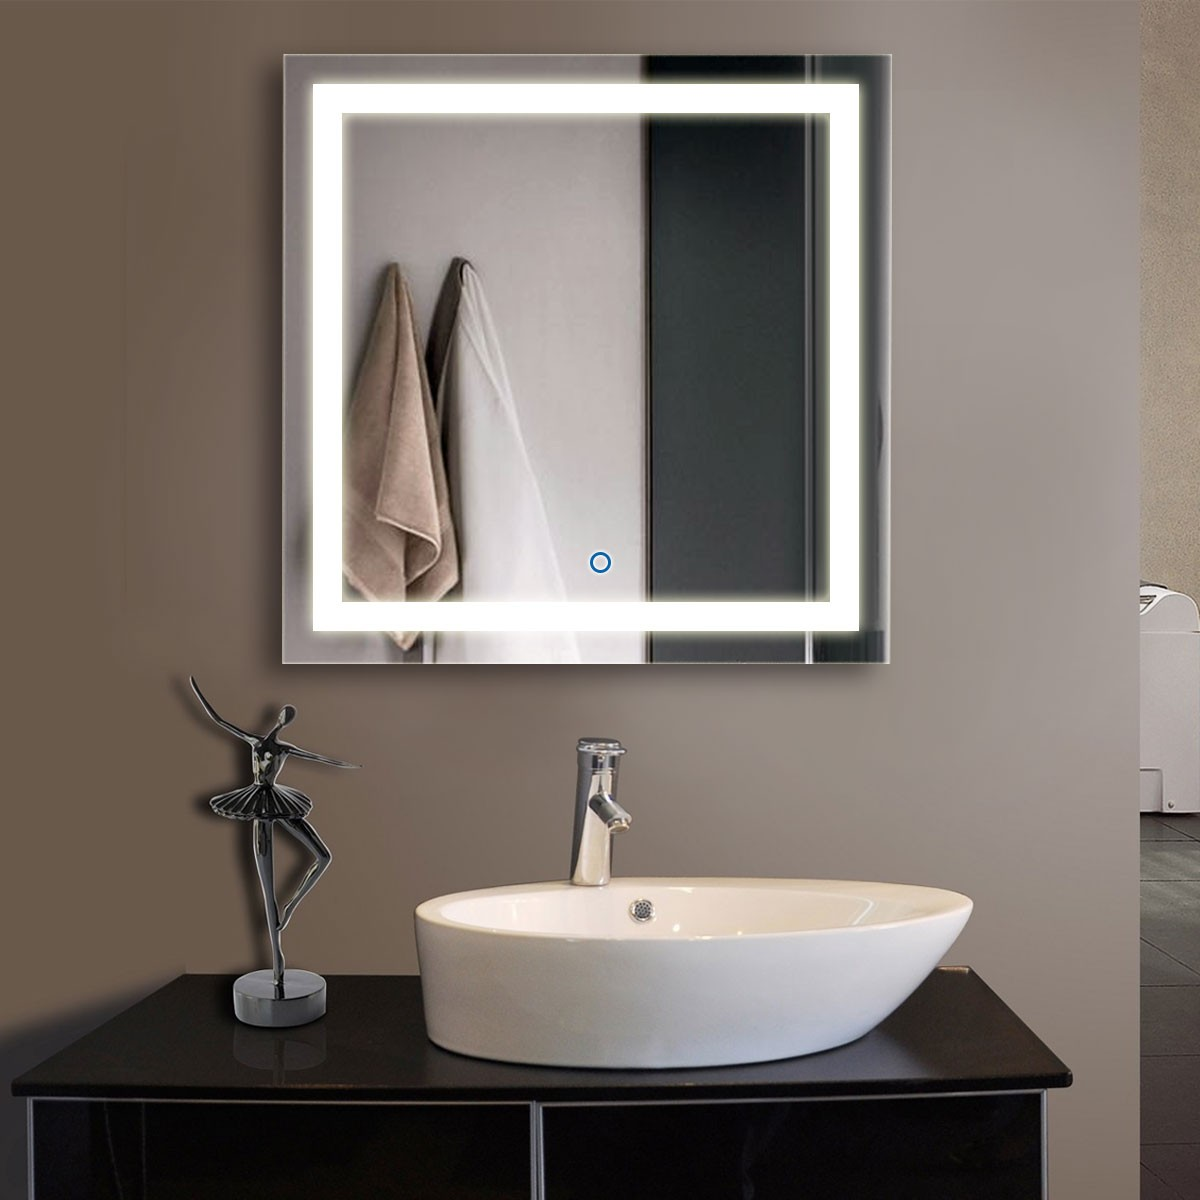 Best Of Wall Mounted Medicine Cabinet